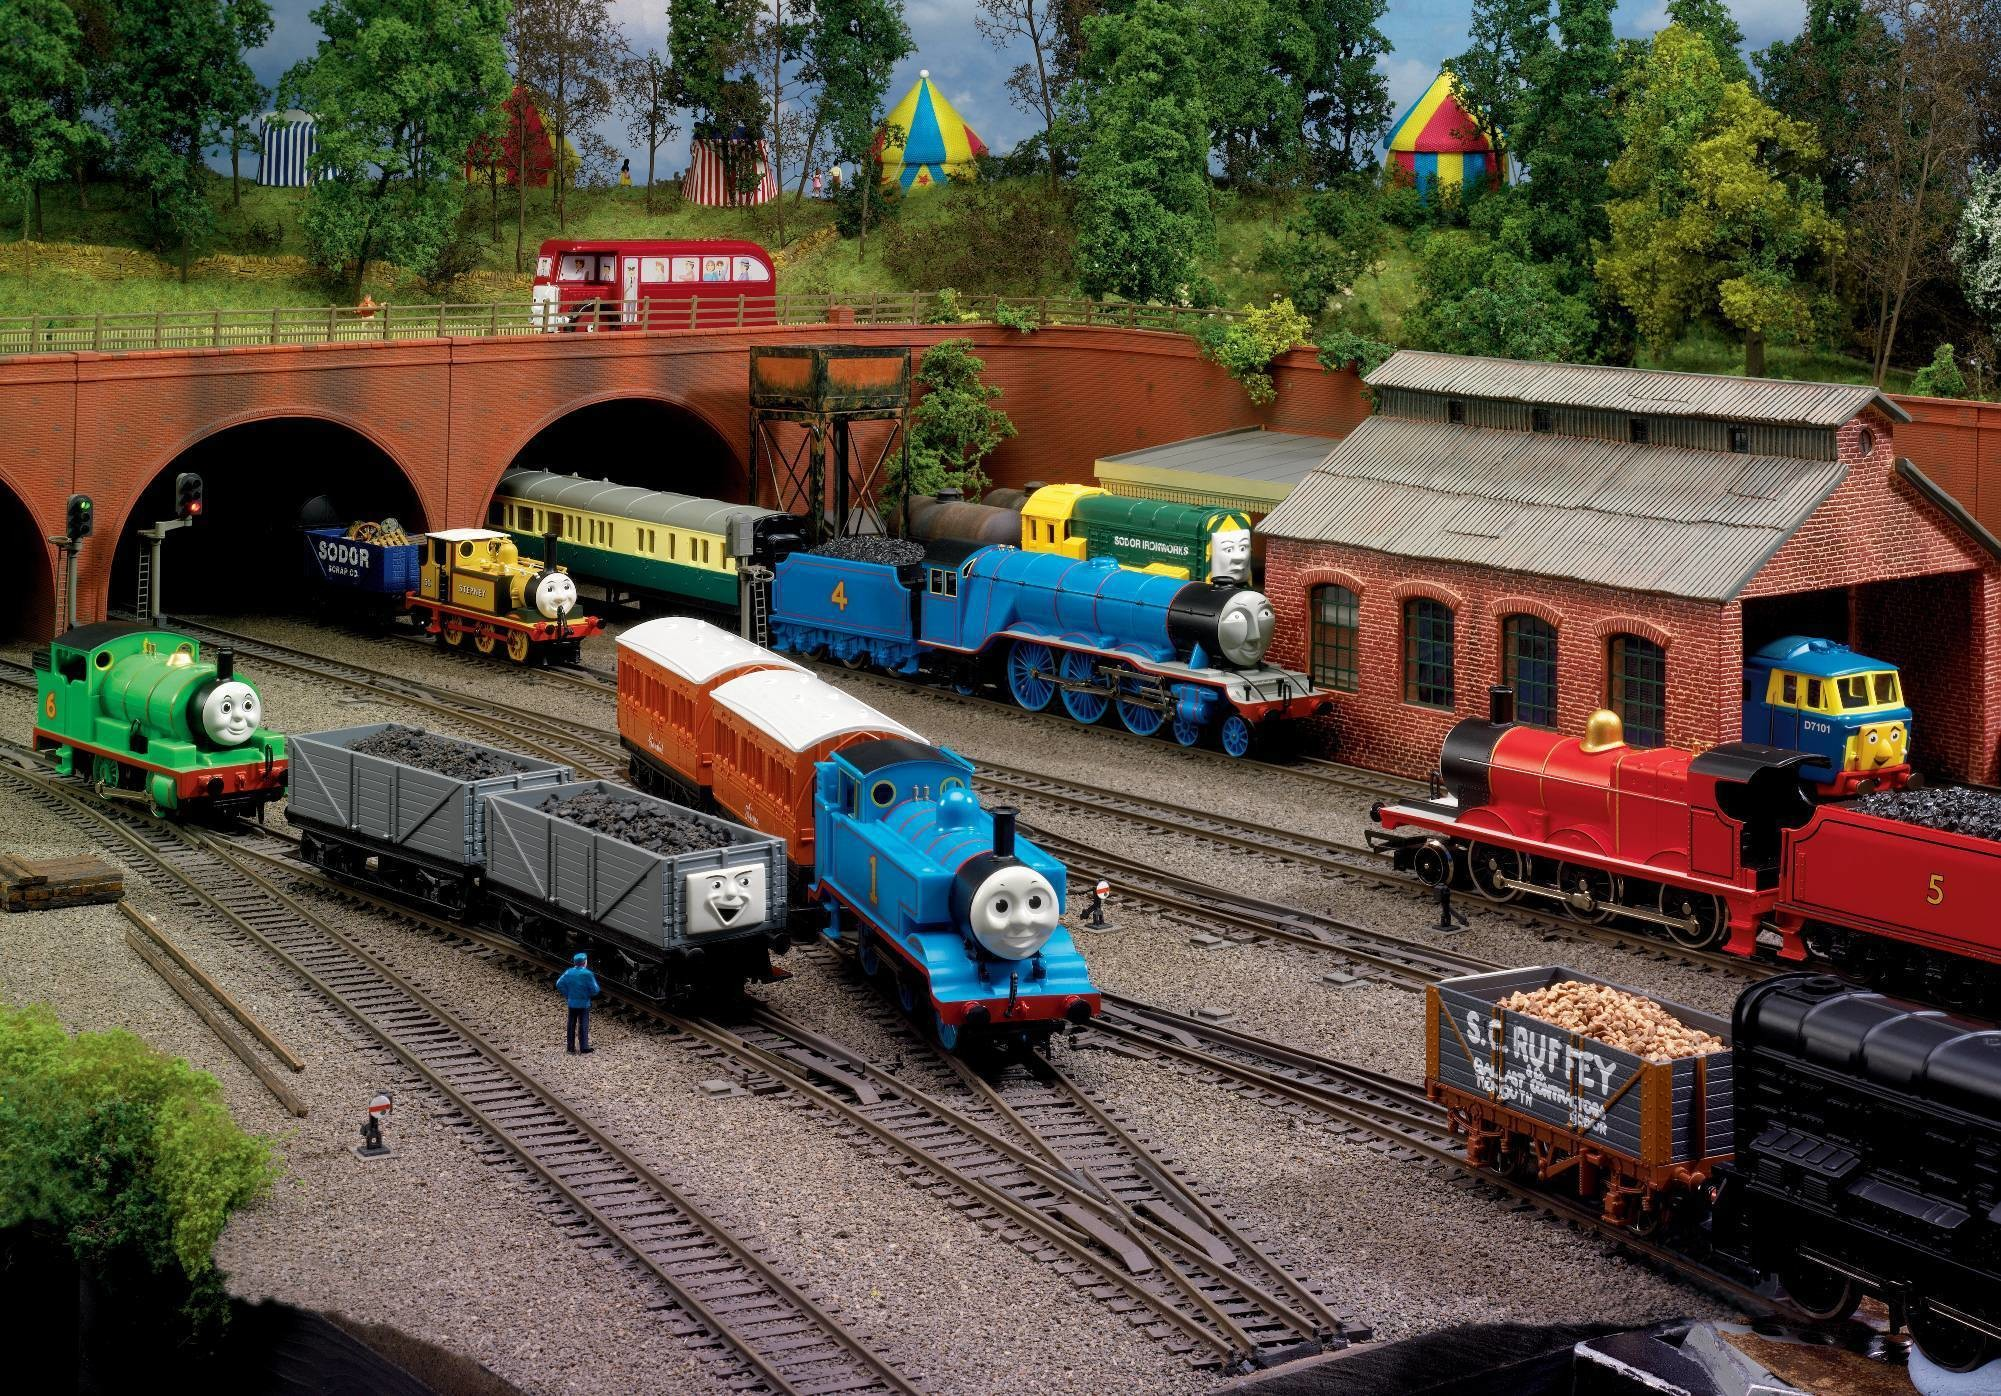 2001x1396 Thomas And Friends images thomas & friends HD wallpaper and .